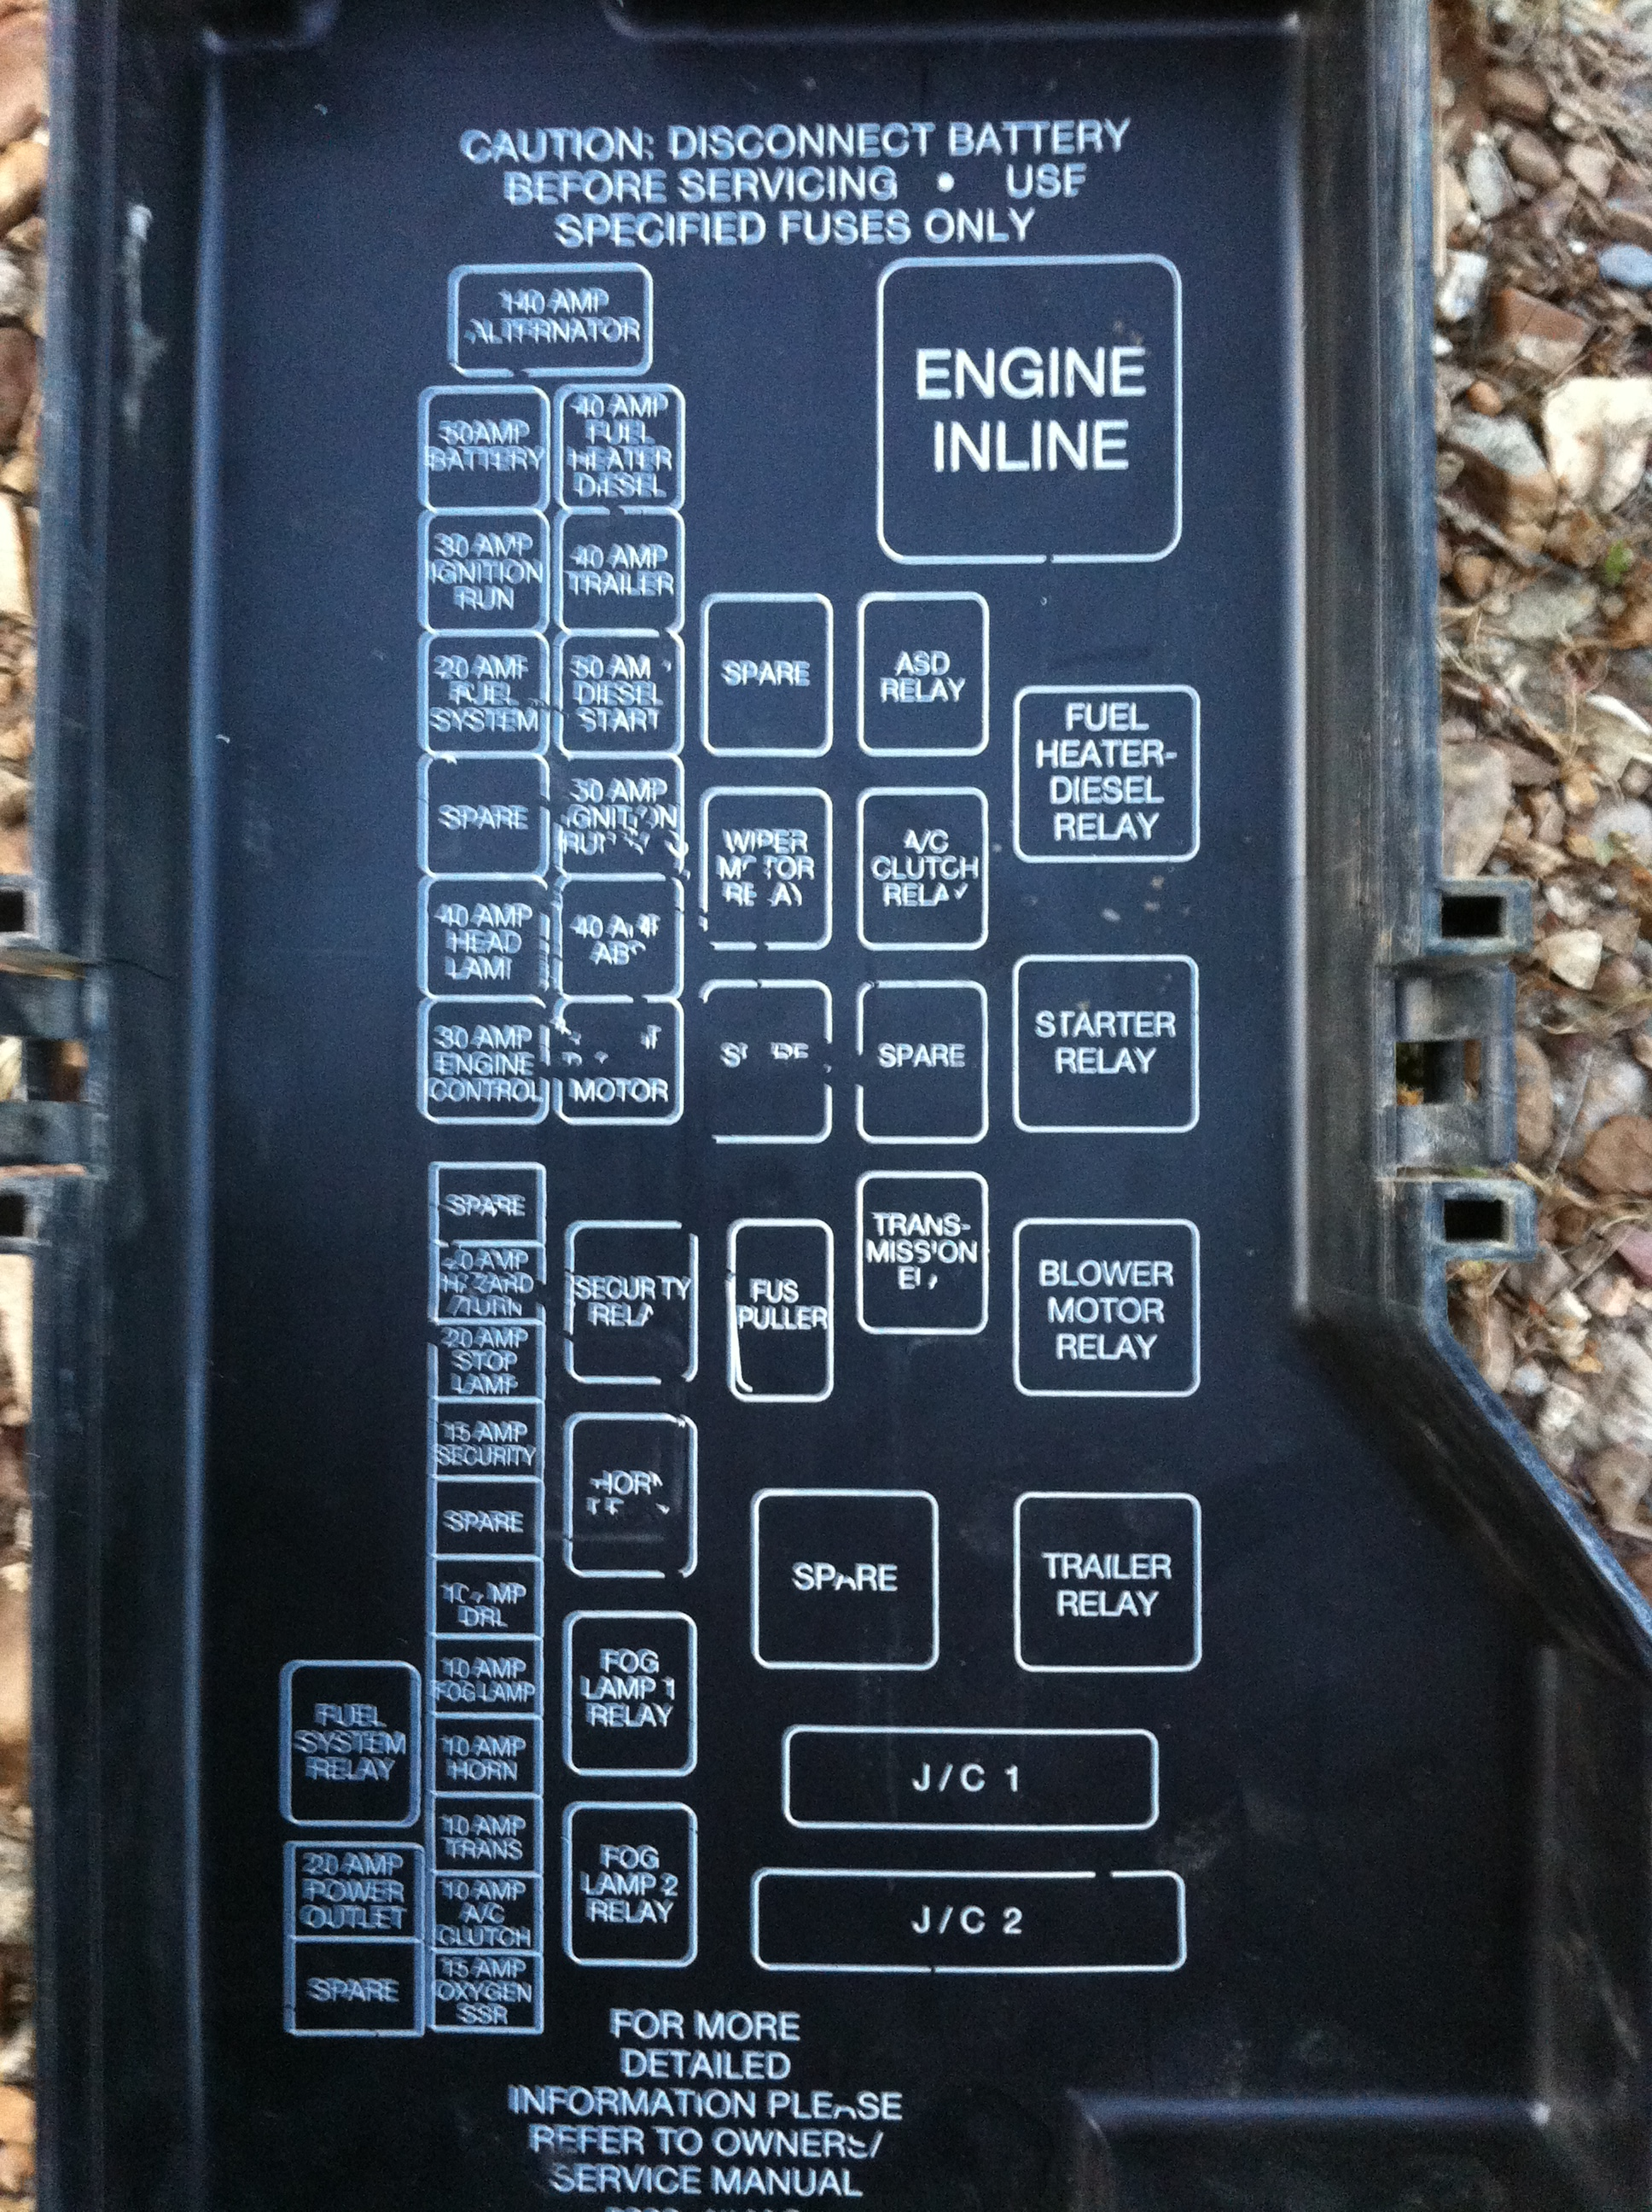 98 dodge dakota fuse diagram wiring diagramfuse box diagram 99 dakota control cables \\u0026 wiring diagram1999 dakota fuse box wiring diagram1999